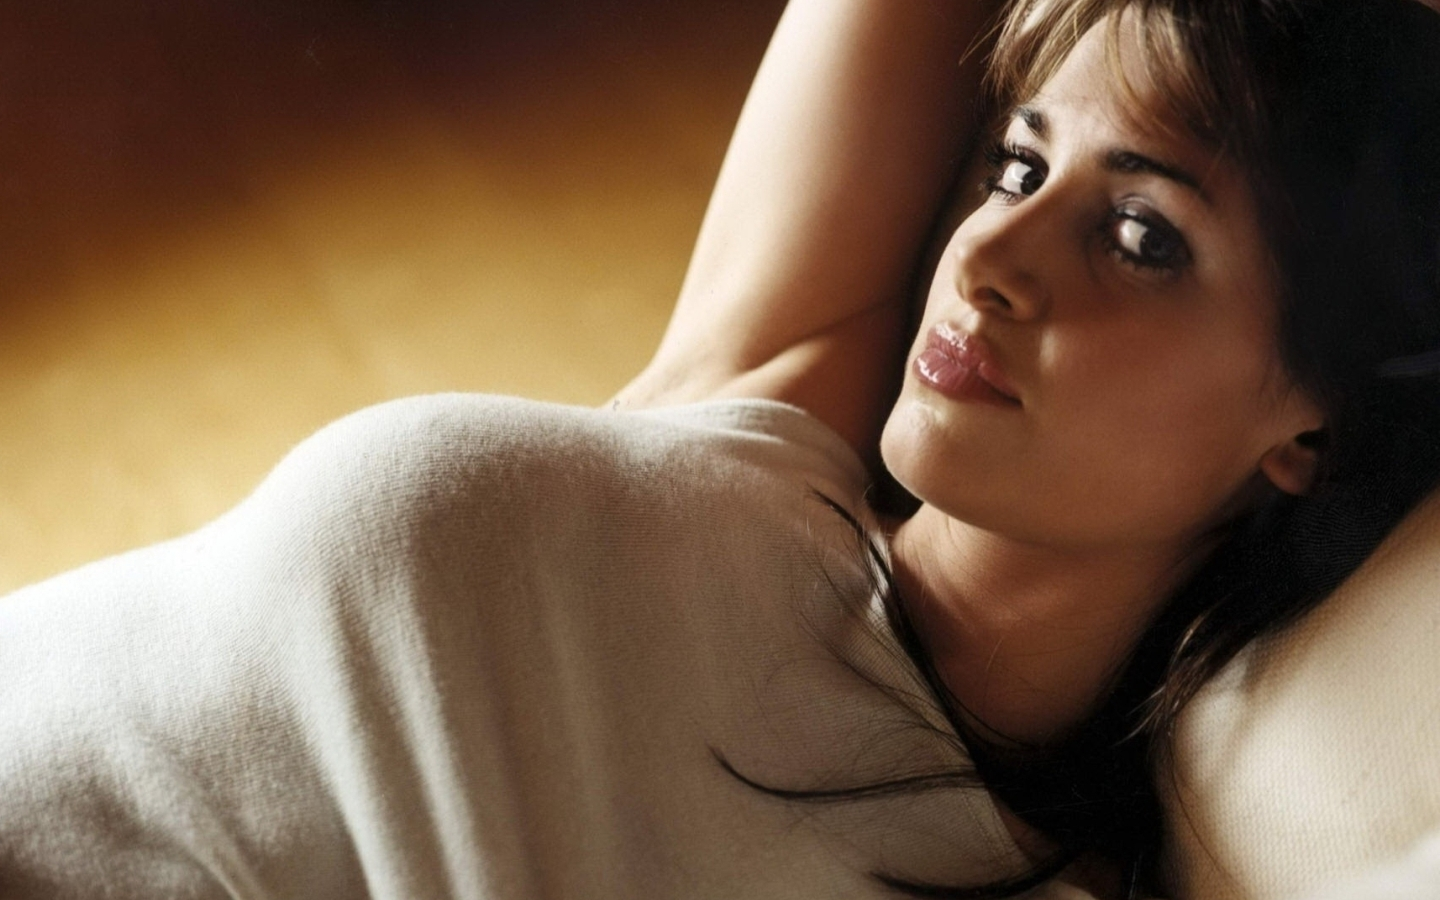 Most Beautiful Indian Girls HD Wallpapers 2 1440x900